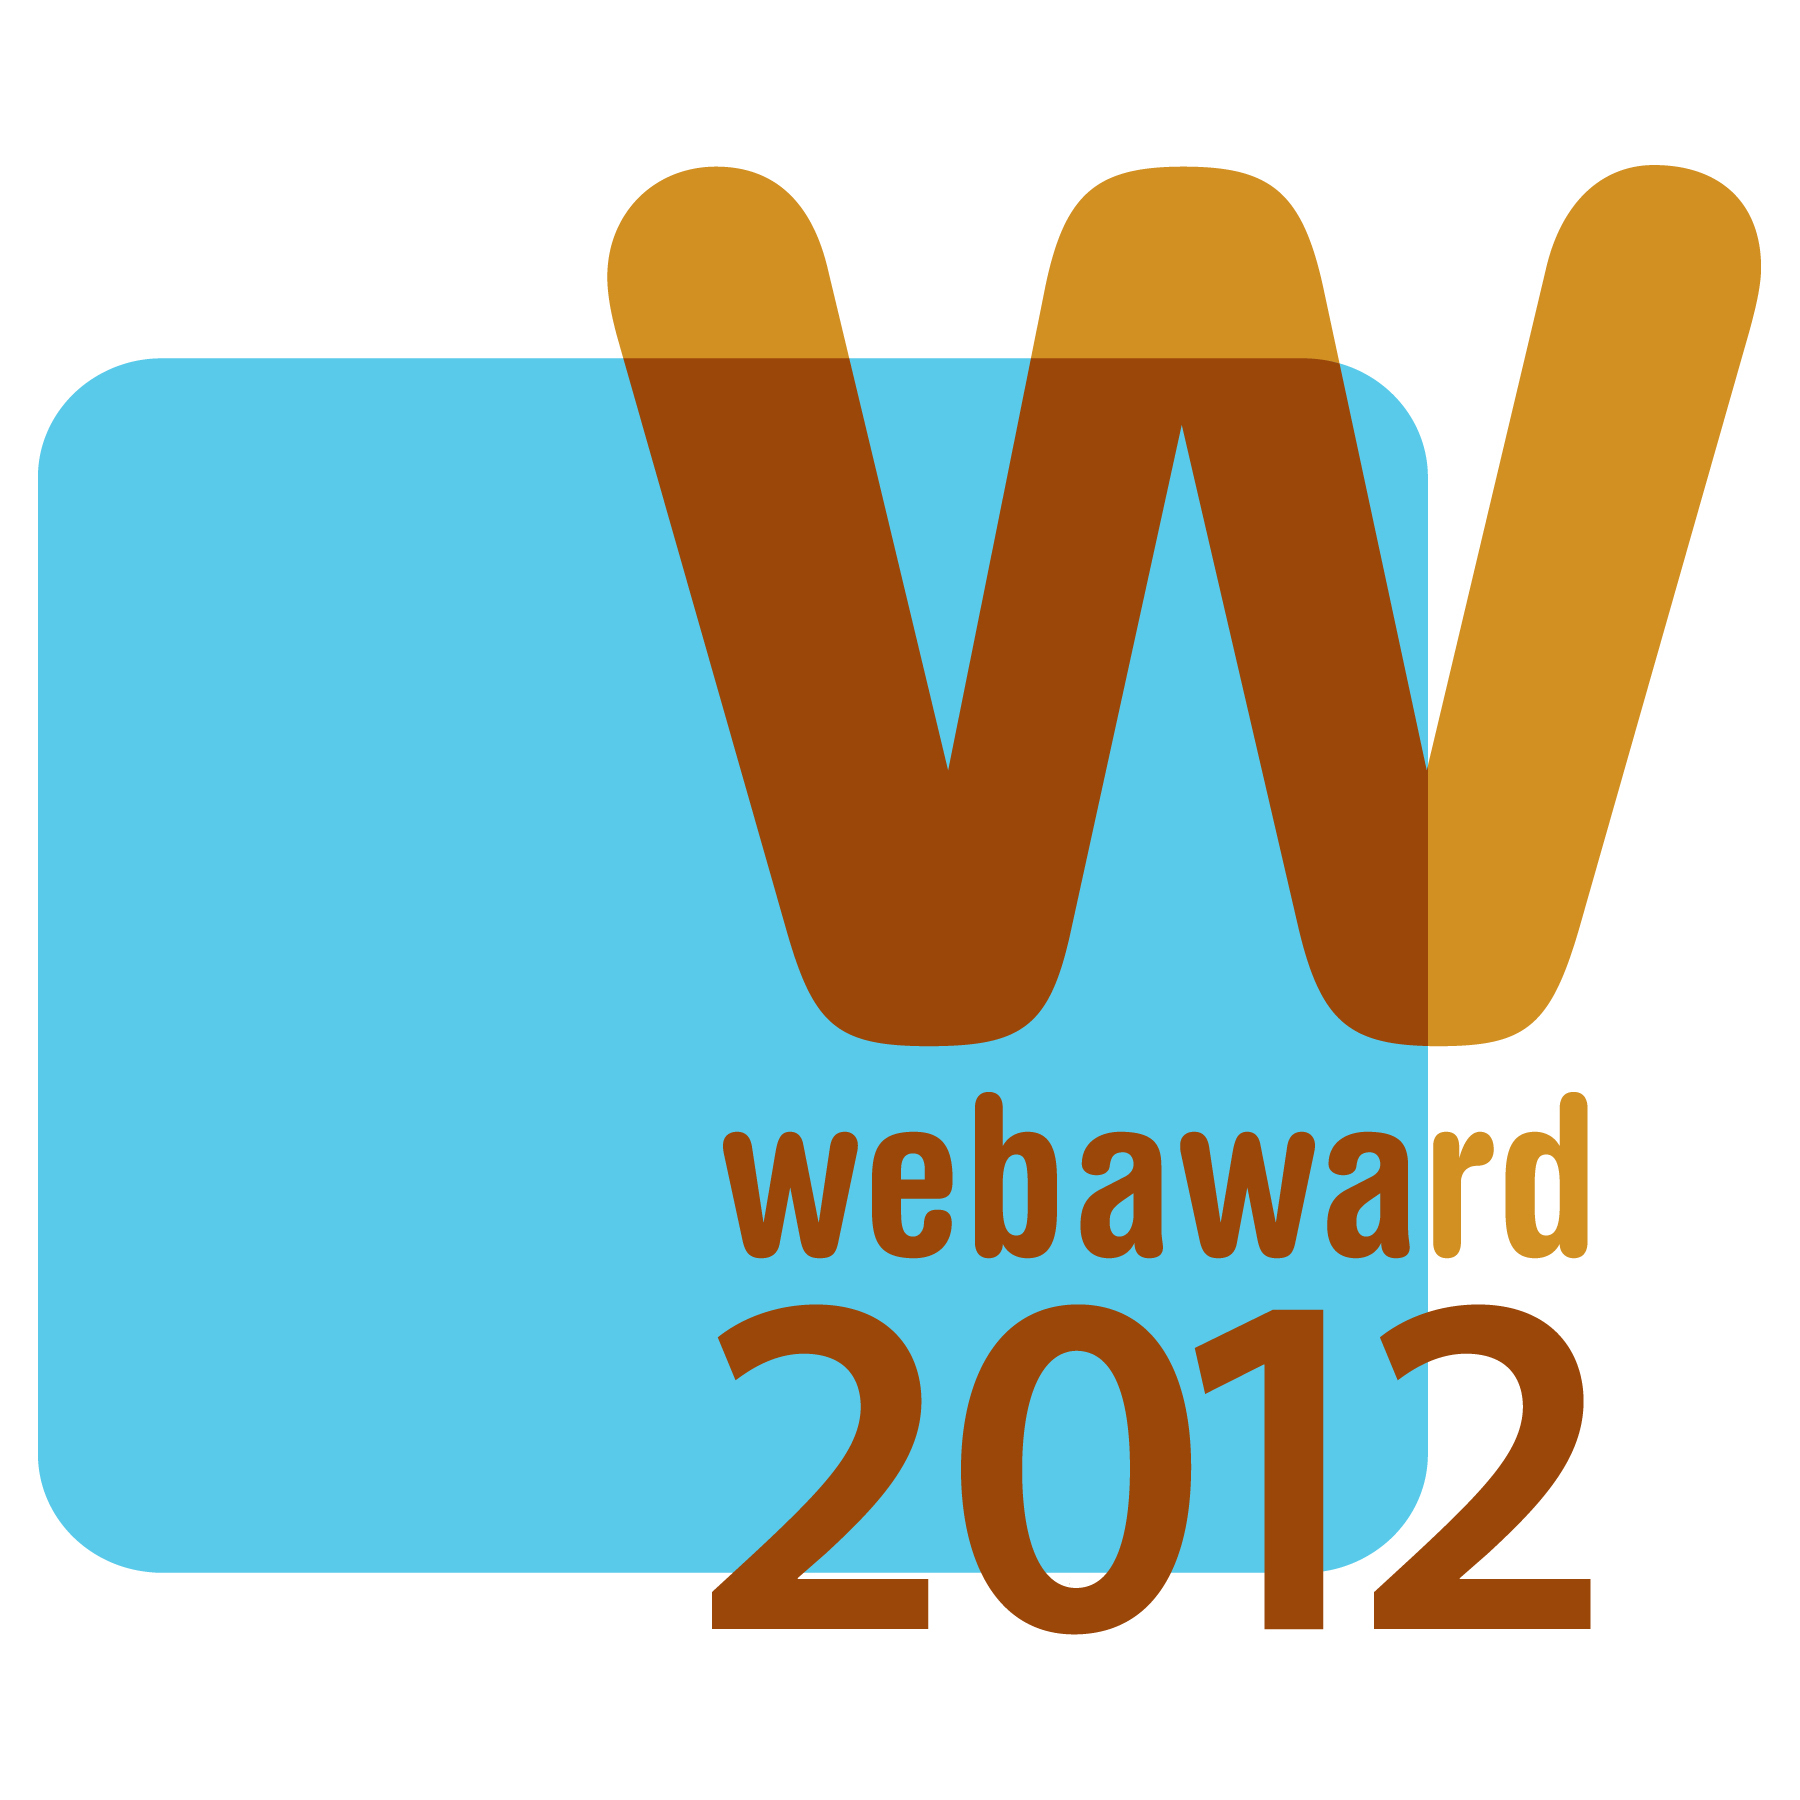 Trifecta Technologies received the Web Award in 2012